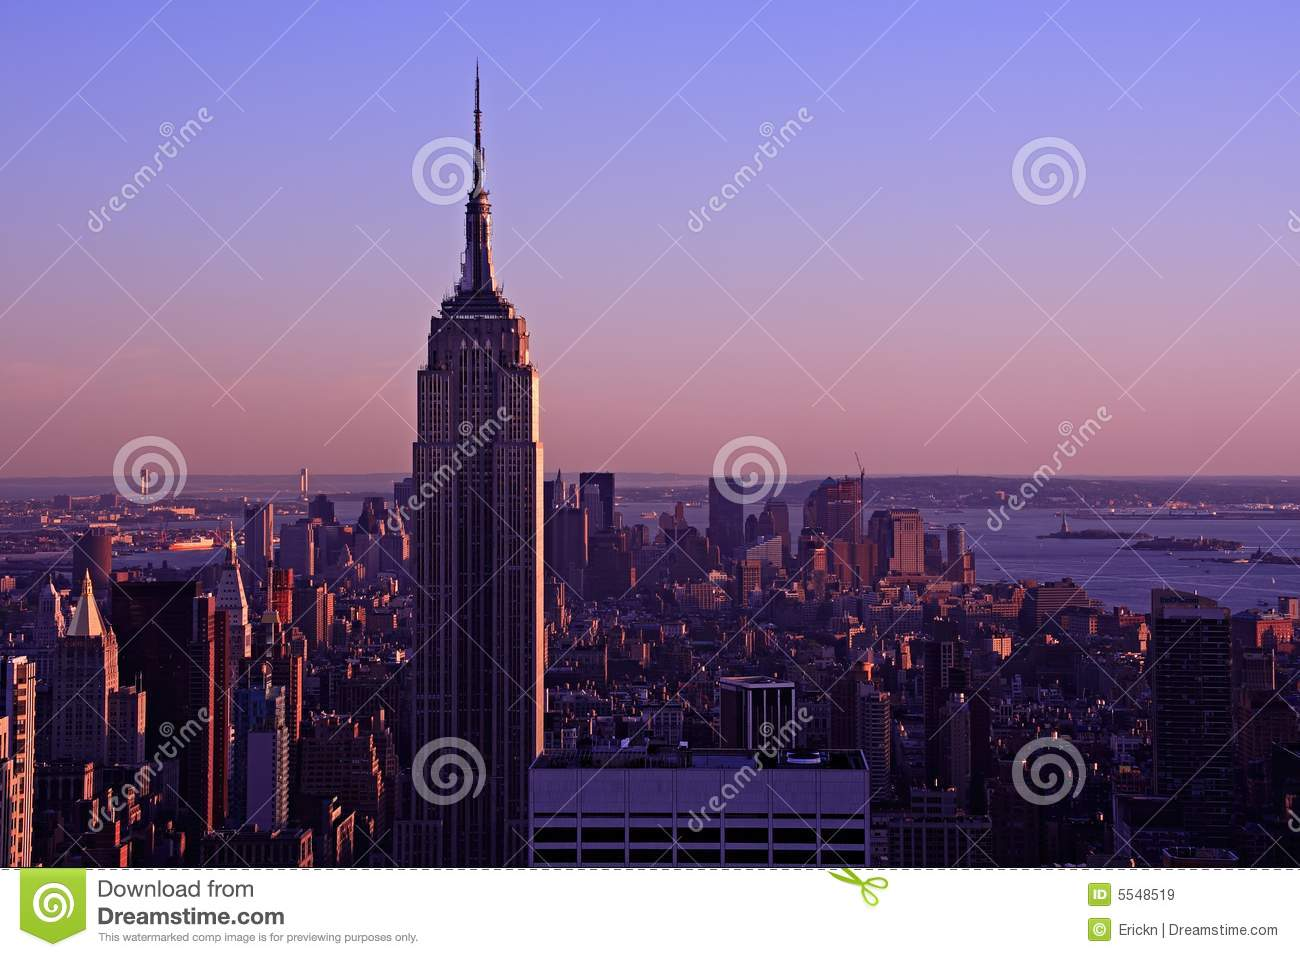 empire state building at dusk stock image image of dusk building